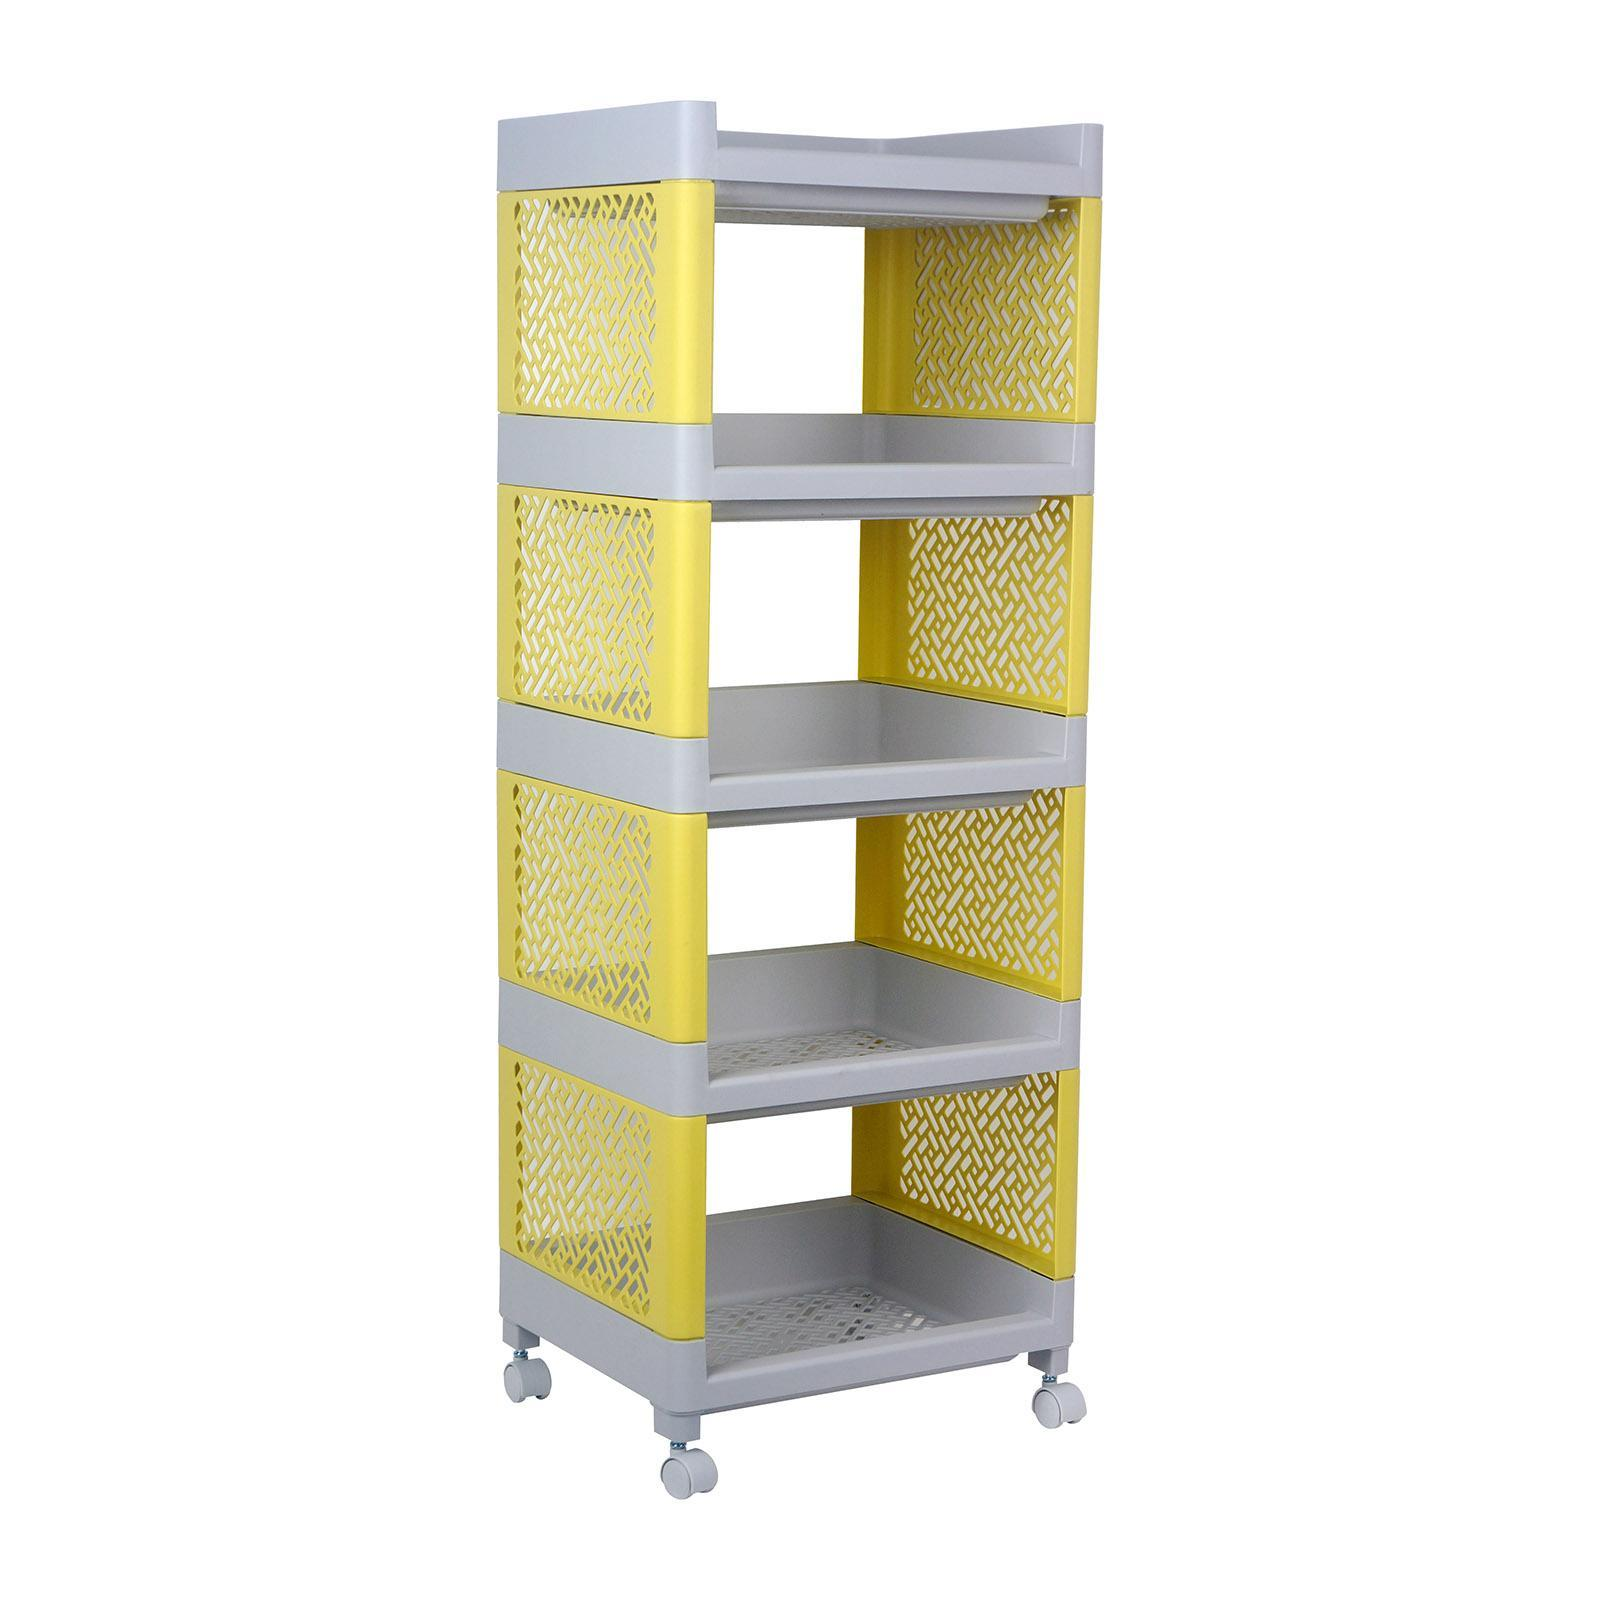 CITYLIFE 5 Tier KD Rack